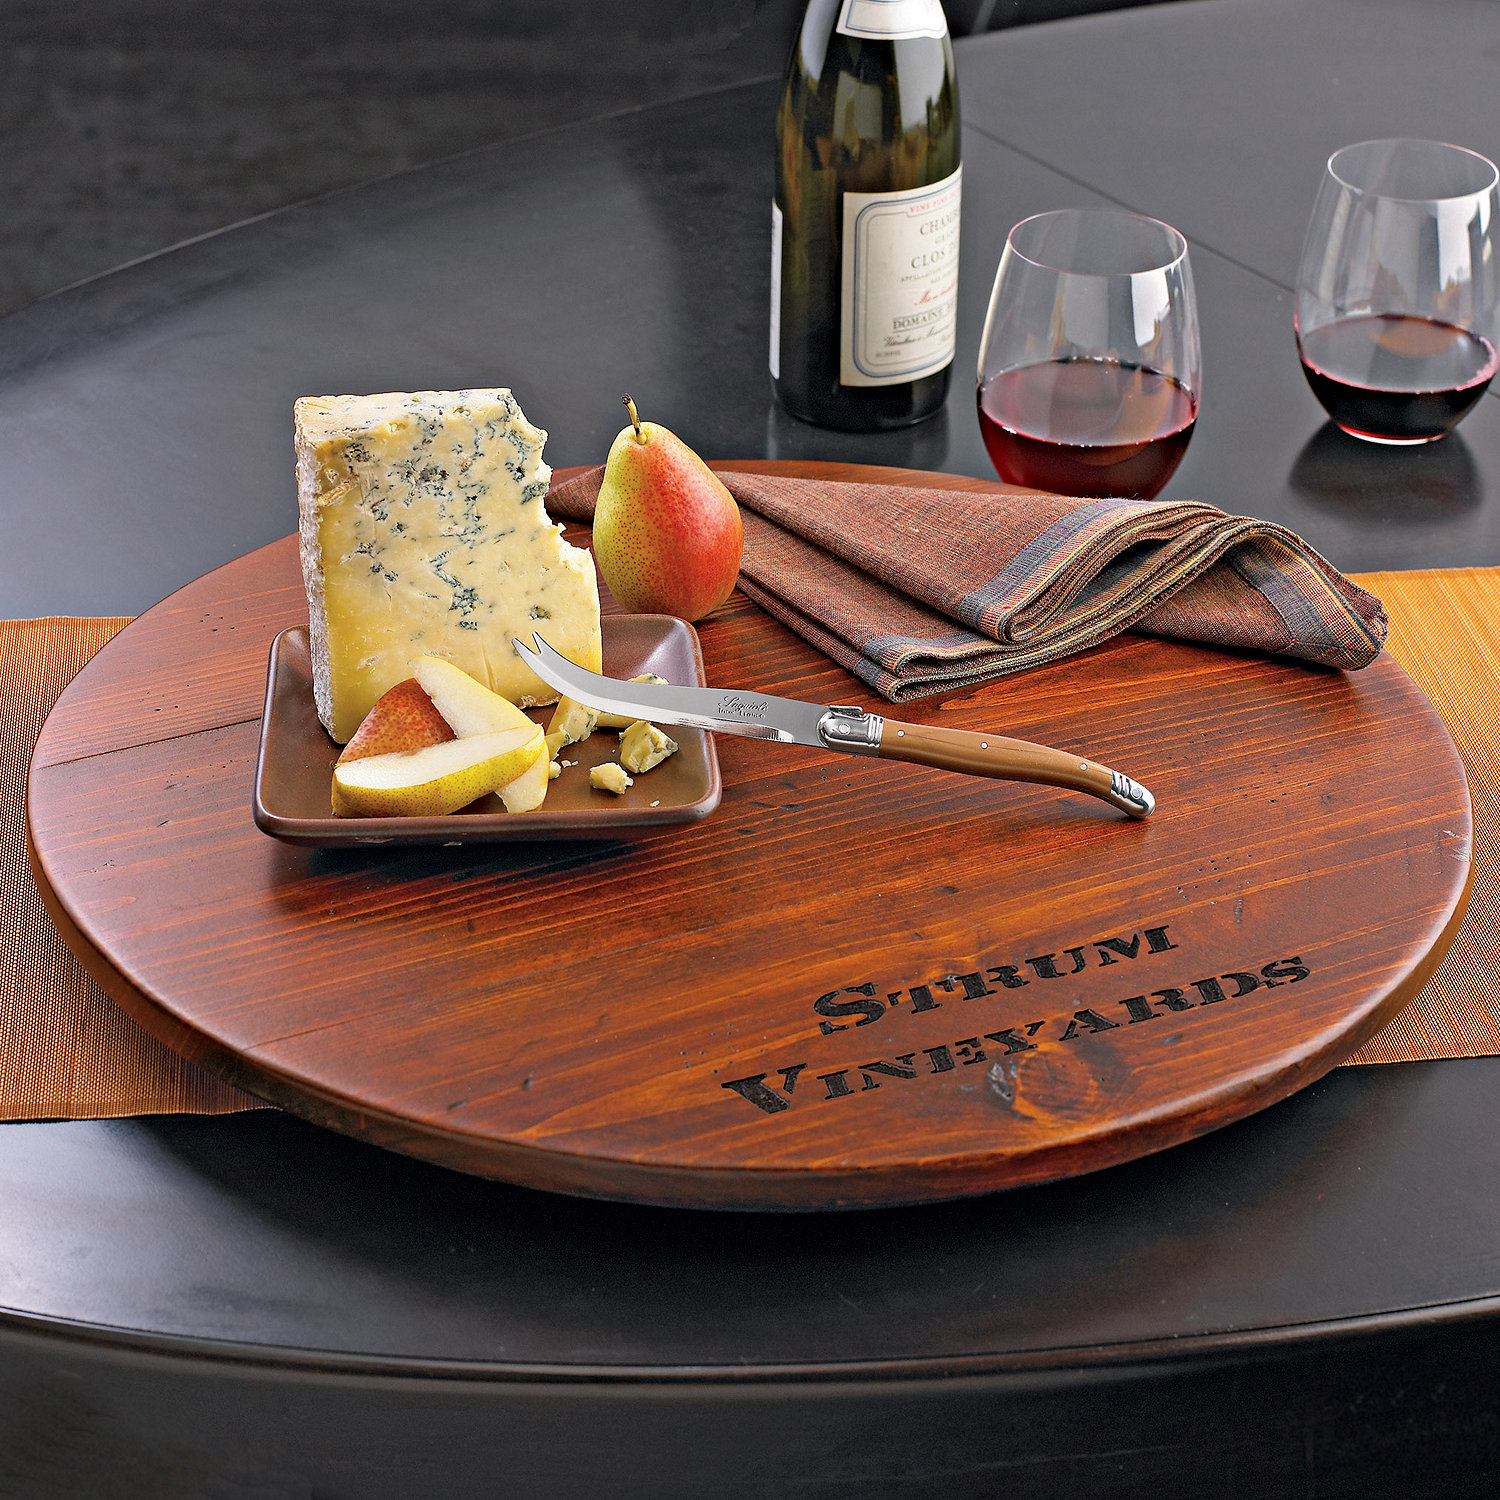 Extraordinary wine barrel lazy susan for furniture accessories ideas with personalized wine barrel lazy susan